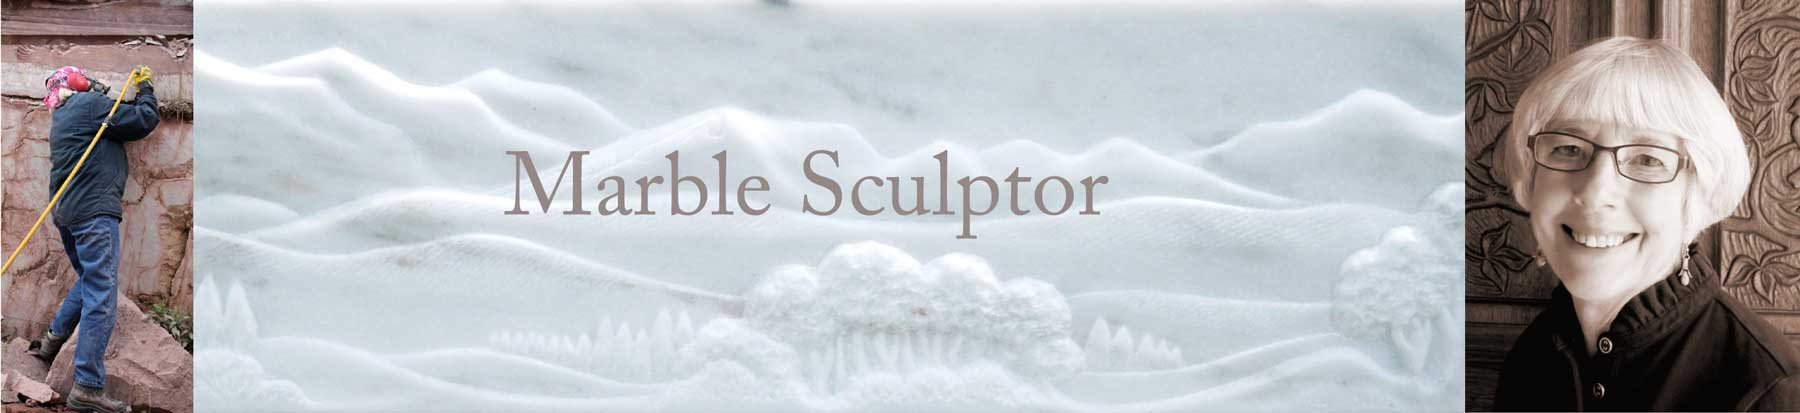 Nancy Diefenbach marble sculptor from Vermont